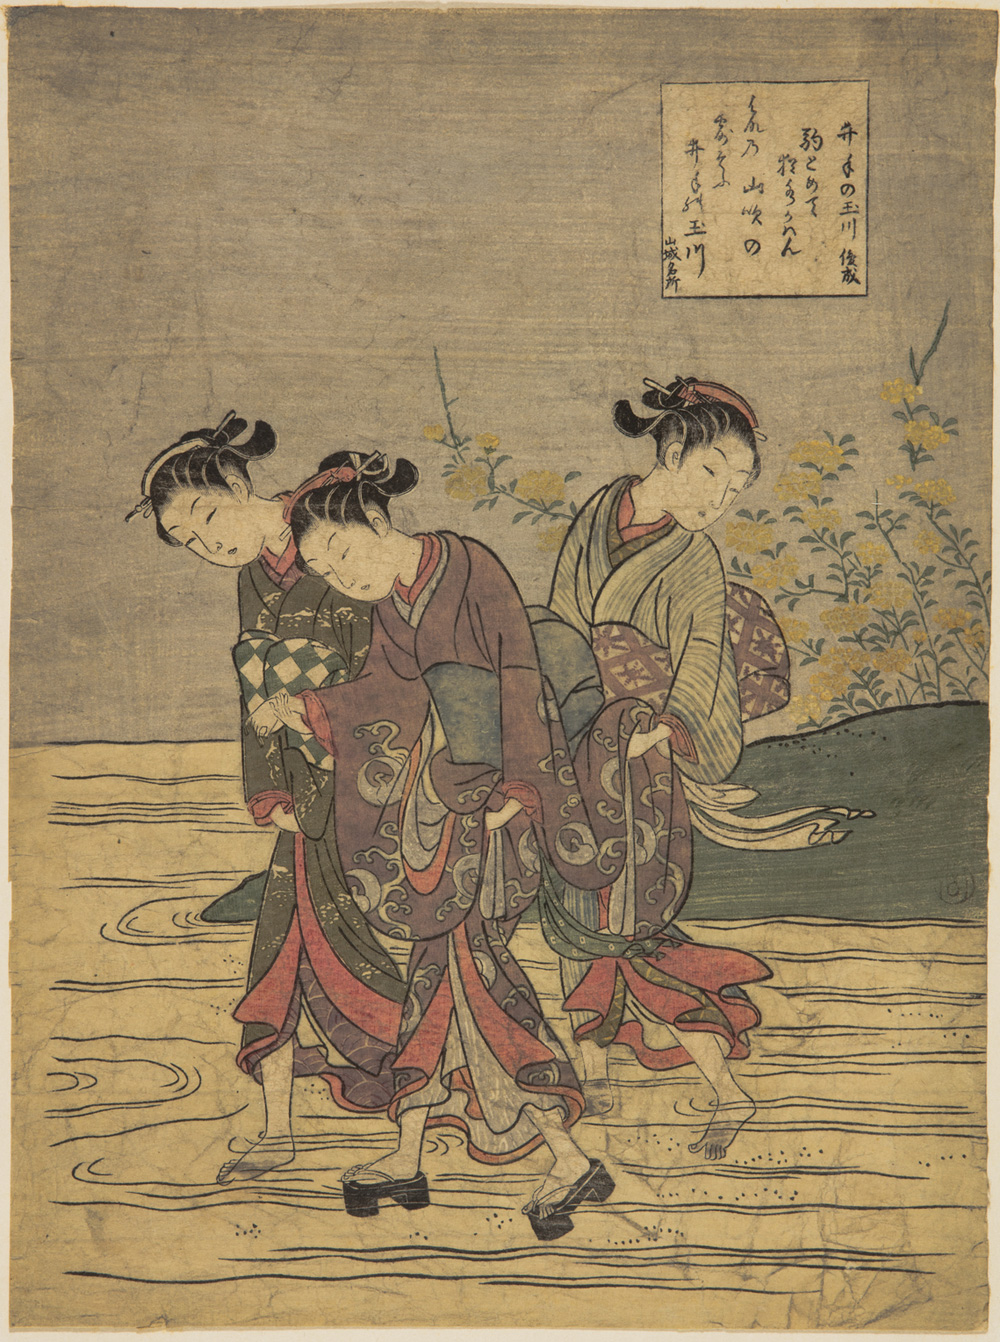 Japanese print of three women in traditional clothes, they hold their skirts up as they walk through water, two are barefoot, one wears platform shoes, the bank behind has flowers on it.